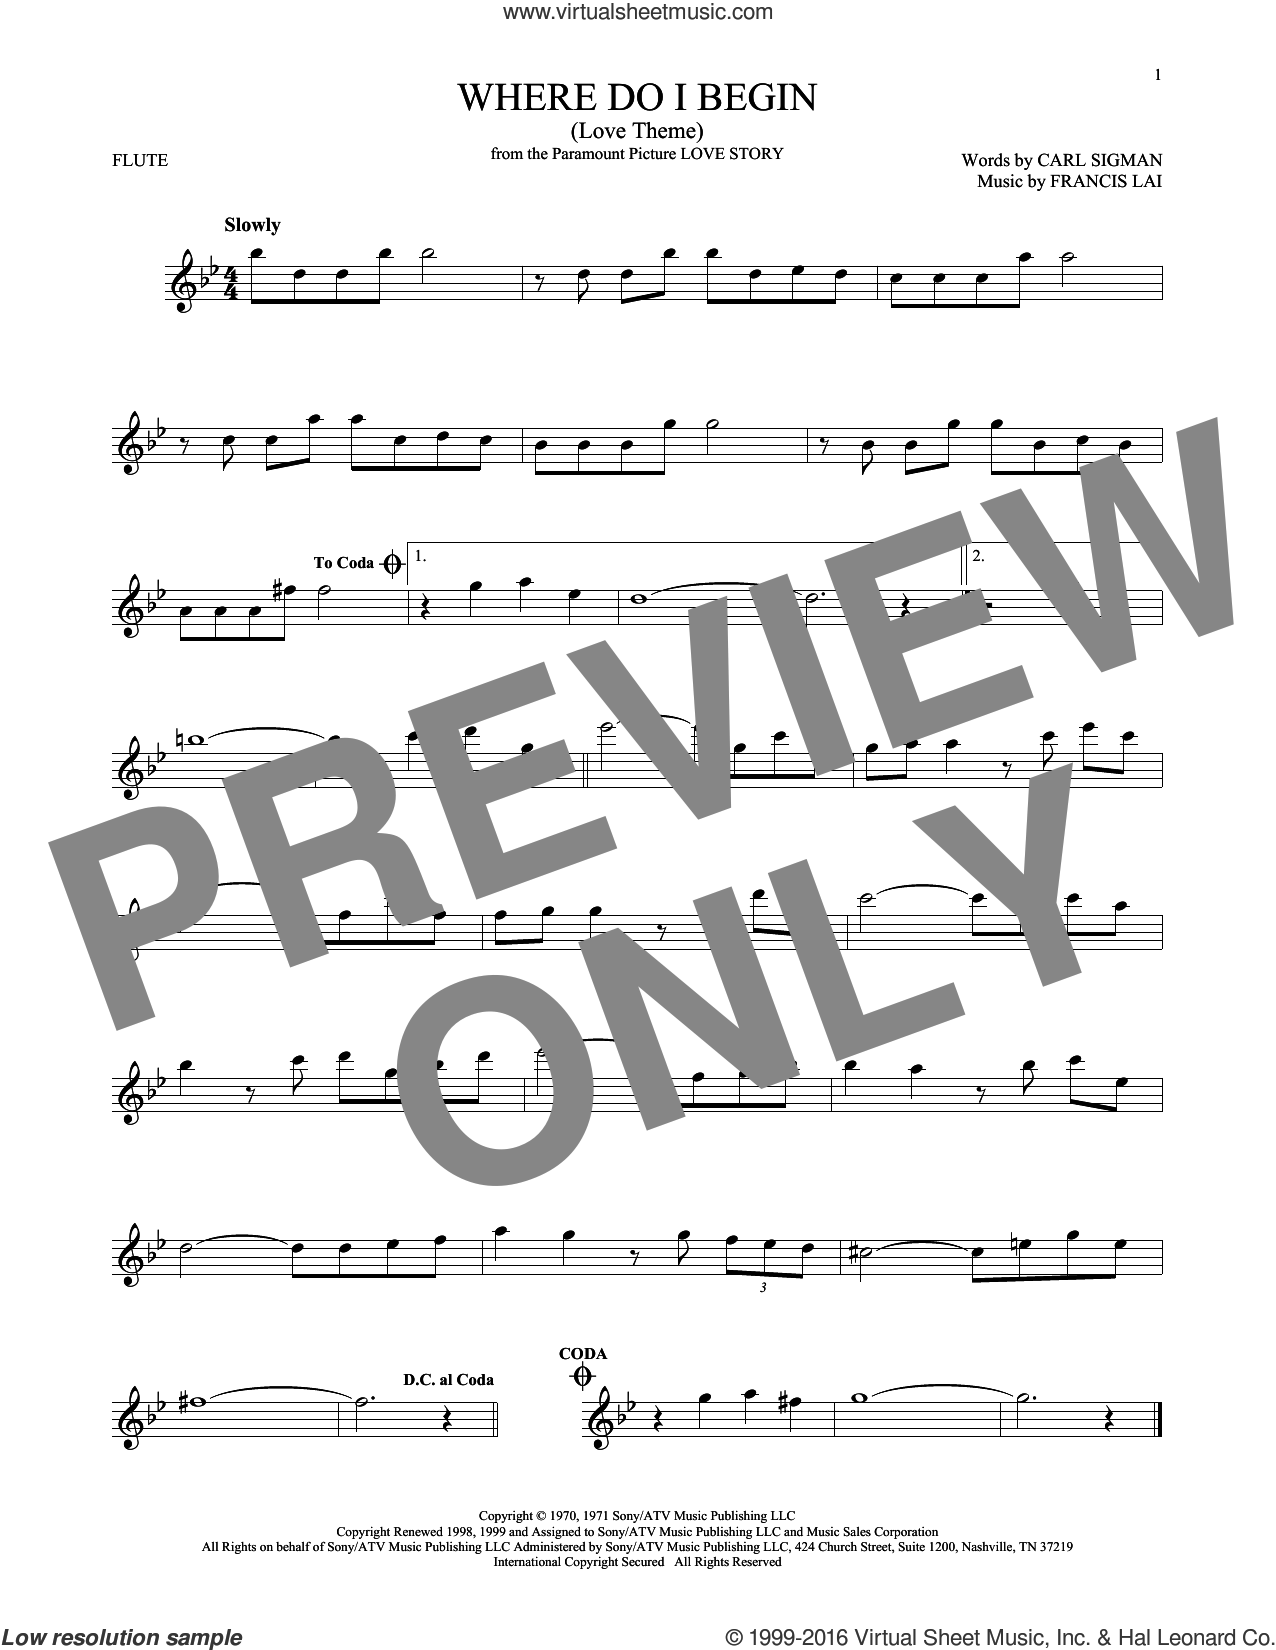 Where Do I Begin (Love Theme) sheet music for flute solo by Andy Williams, Carl Sigman and Francis Lai, intermediate skill level